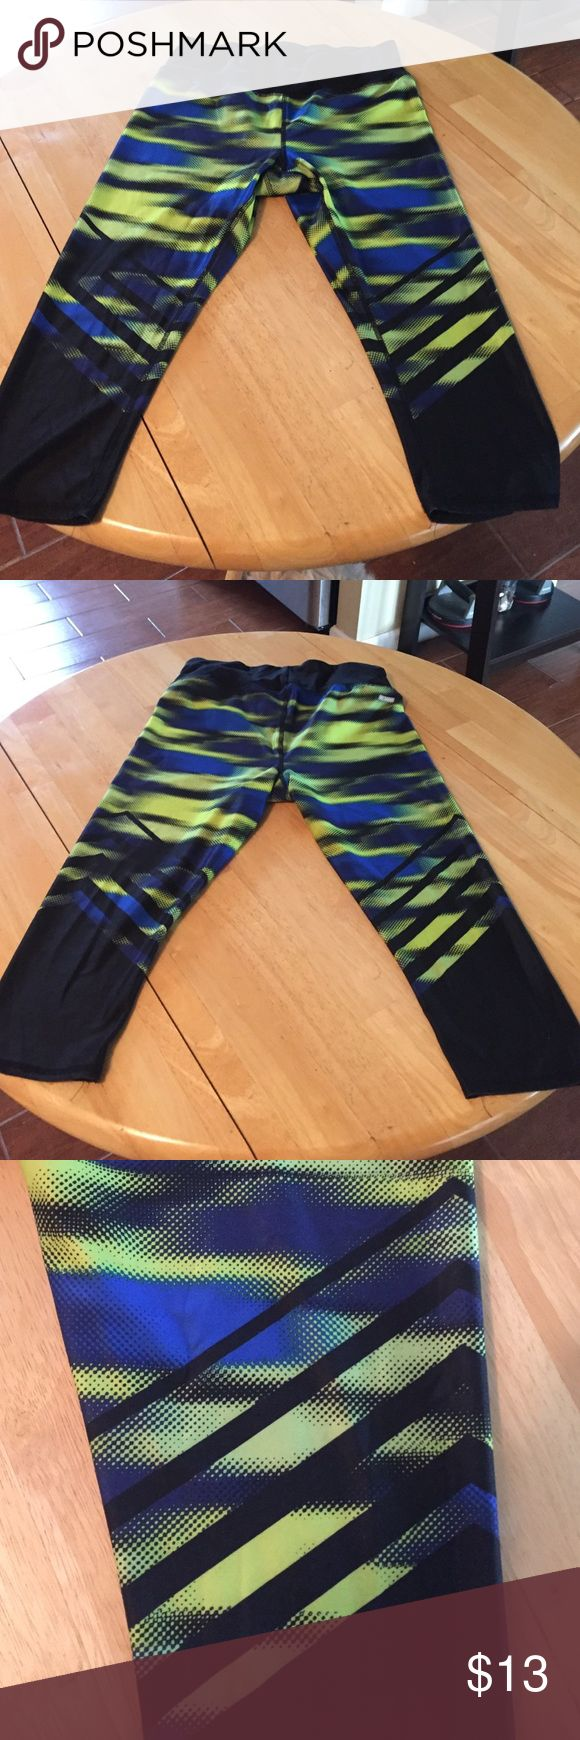 Pattern gym leggings Super soft gym leggings ! Awesome bright color and pattern ! Unfortunately too big worm once in great condition ! Size medium (8-10) Danskin Pants Leggings